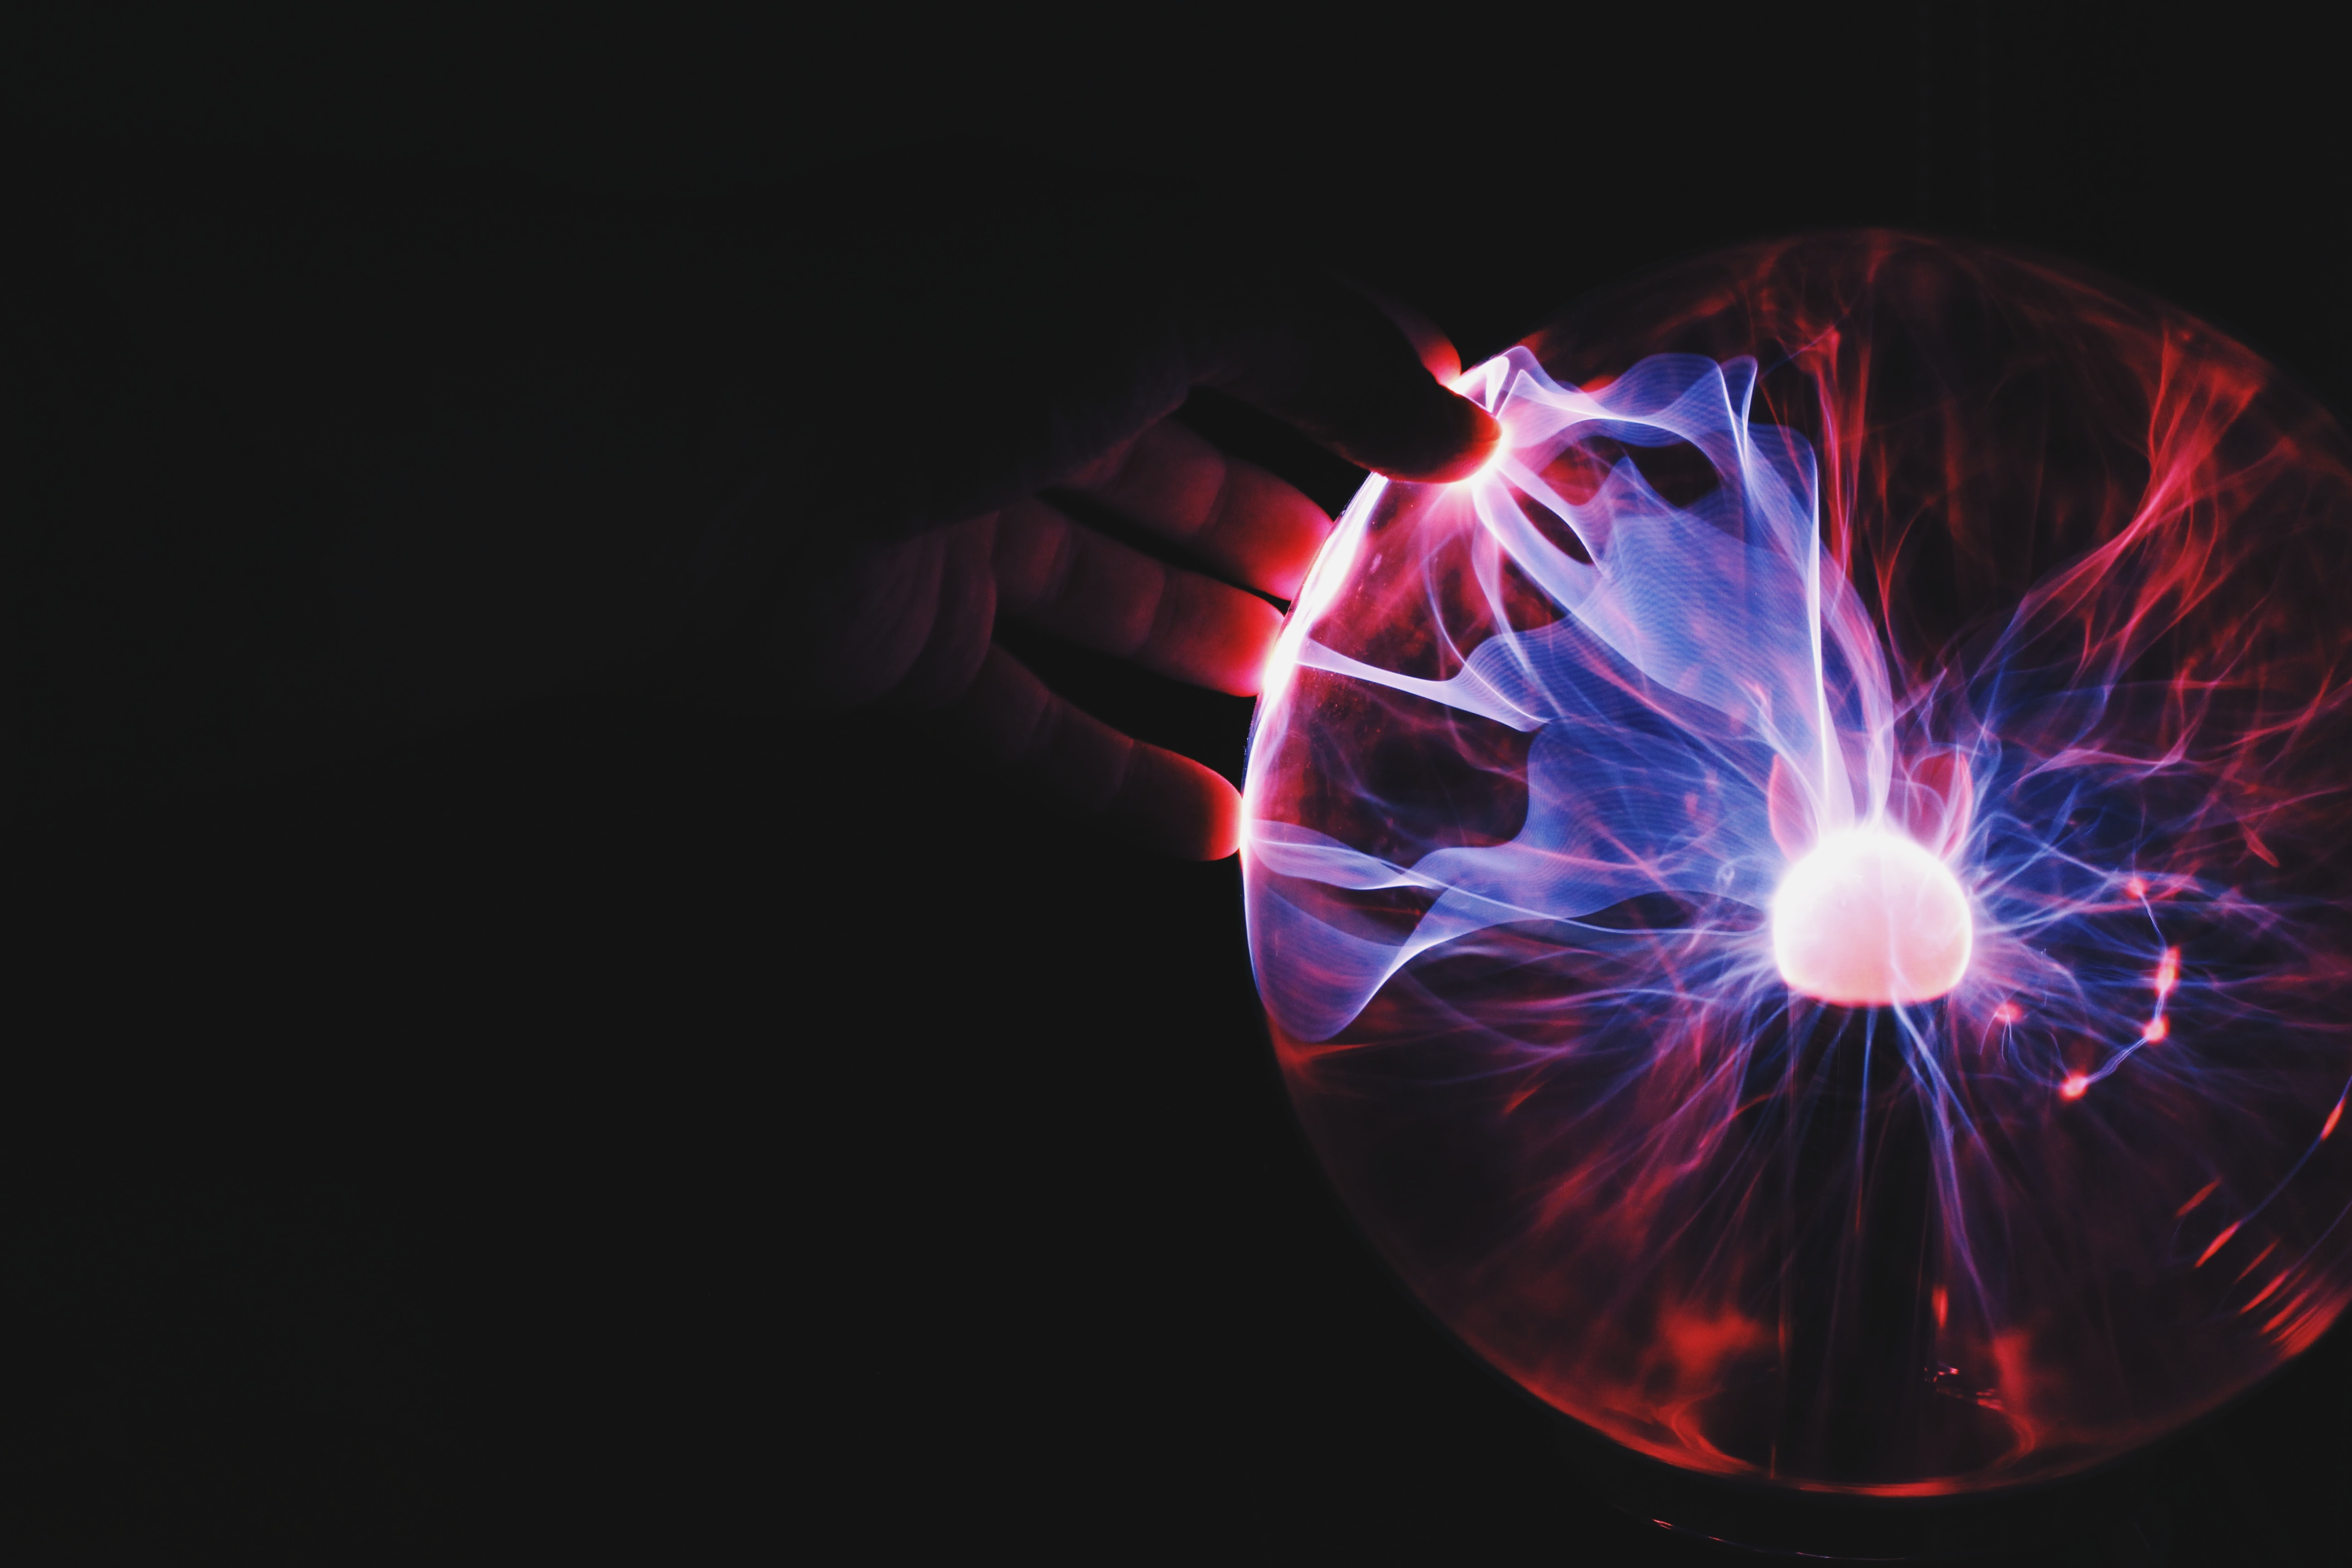 A hand touching an orb pulsating with blue and red energy